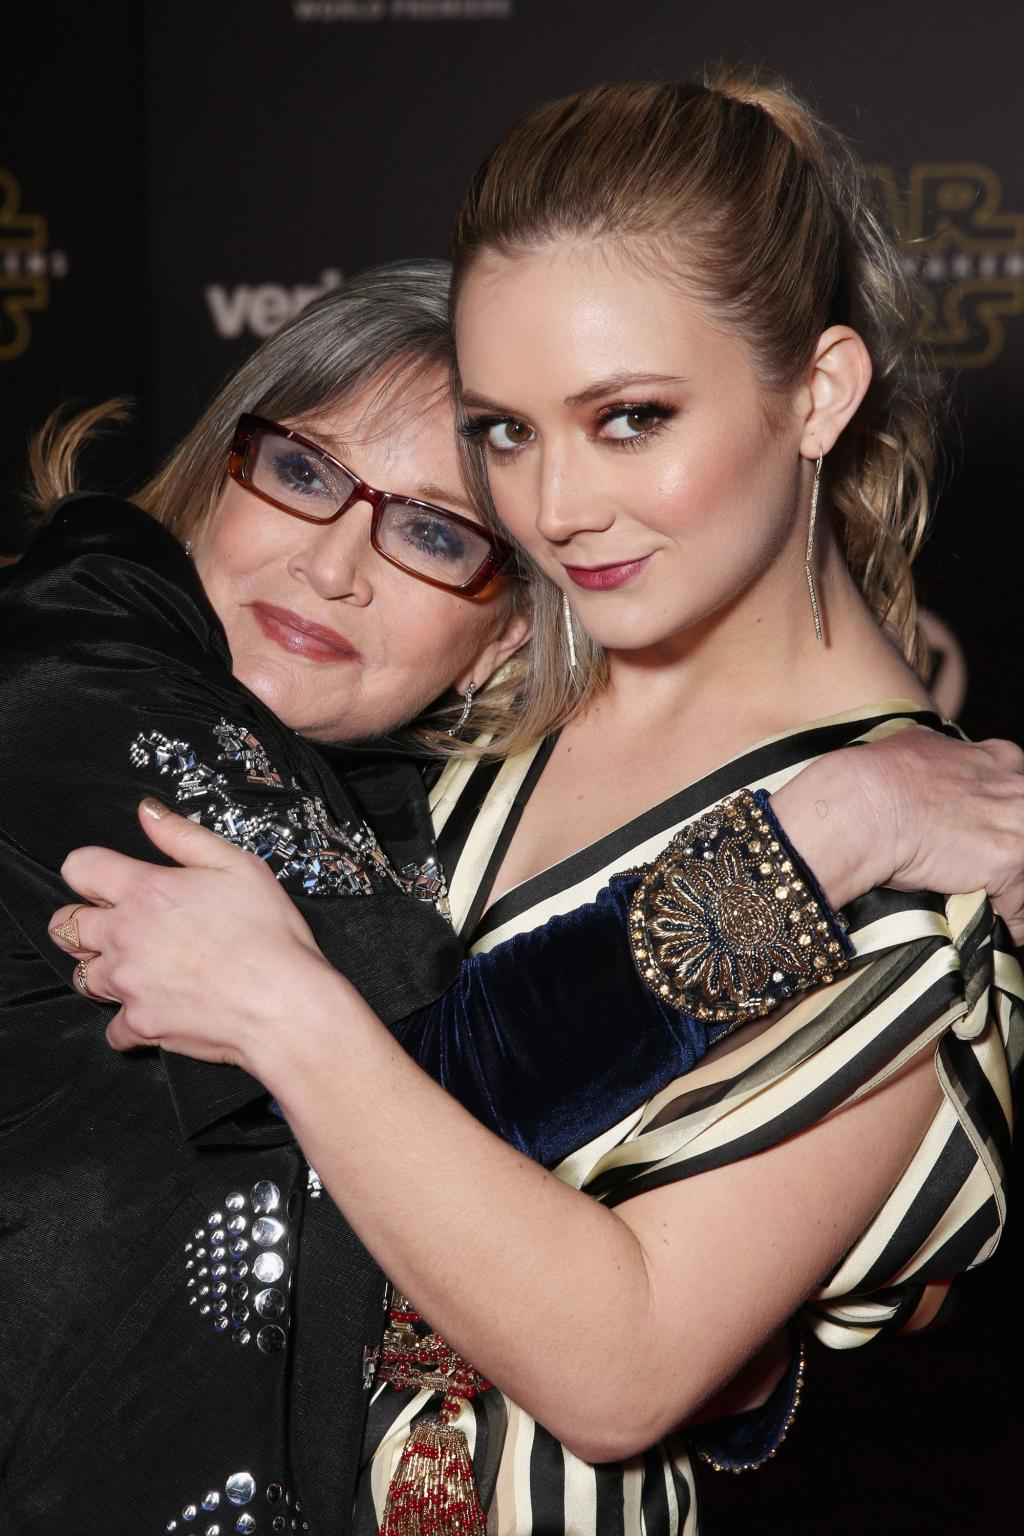 Billie Lourd Shares Photo Thanking Onesie-Clad Friends for Their Support After Carrie Fisher's Death